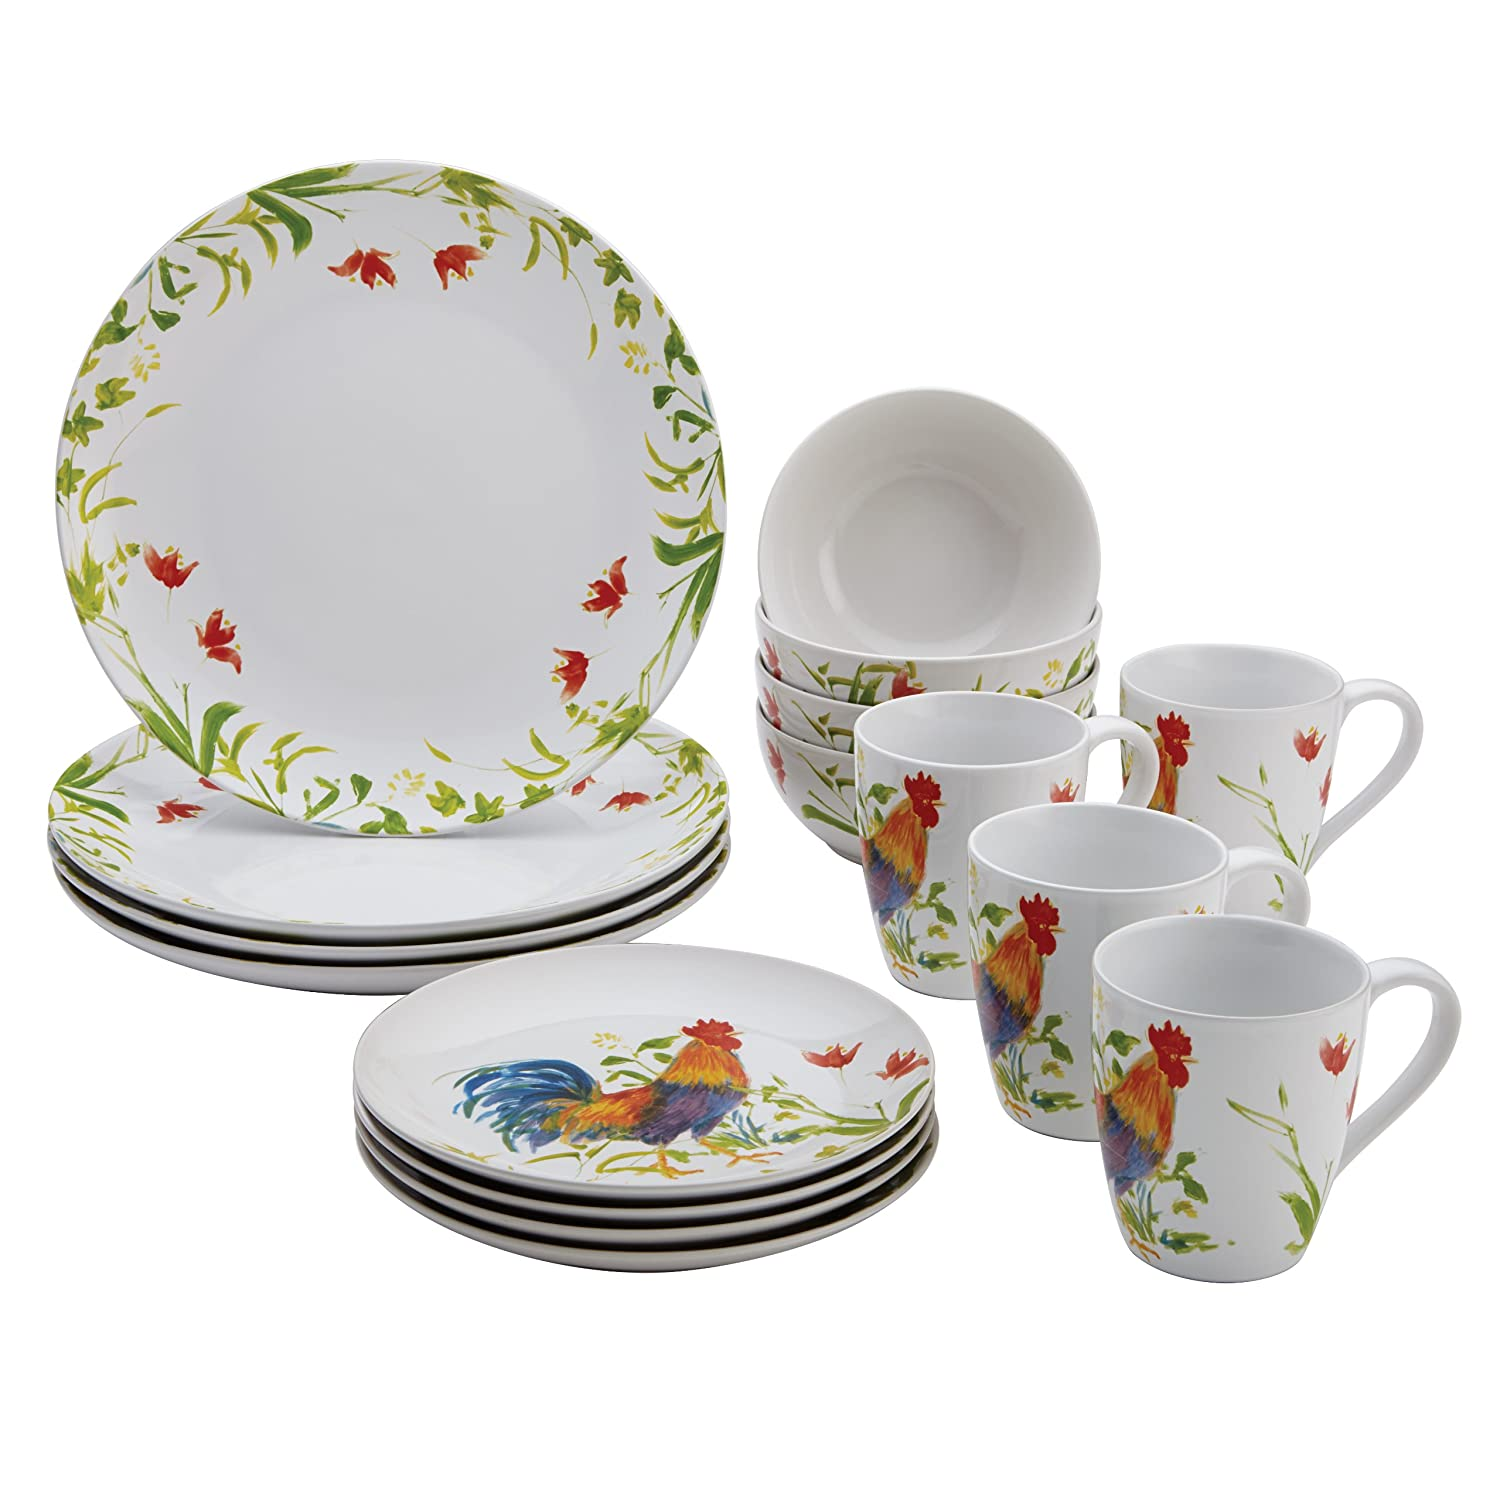 BonJour Meadow Rooster Dishes - Everything Log Homes